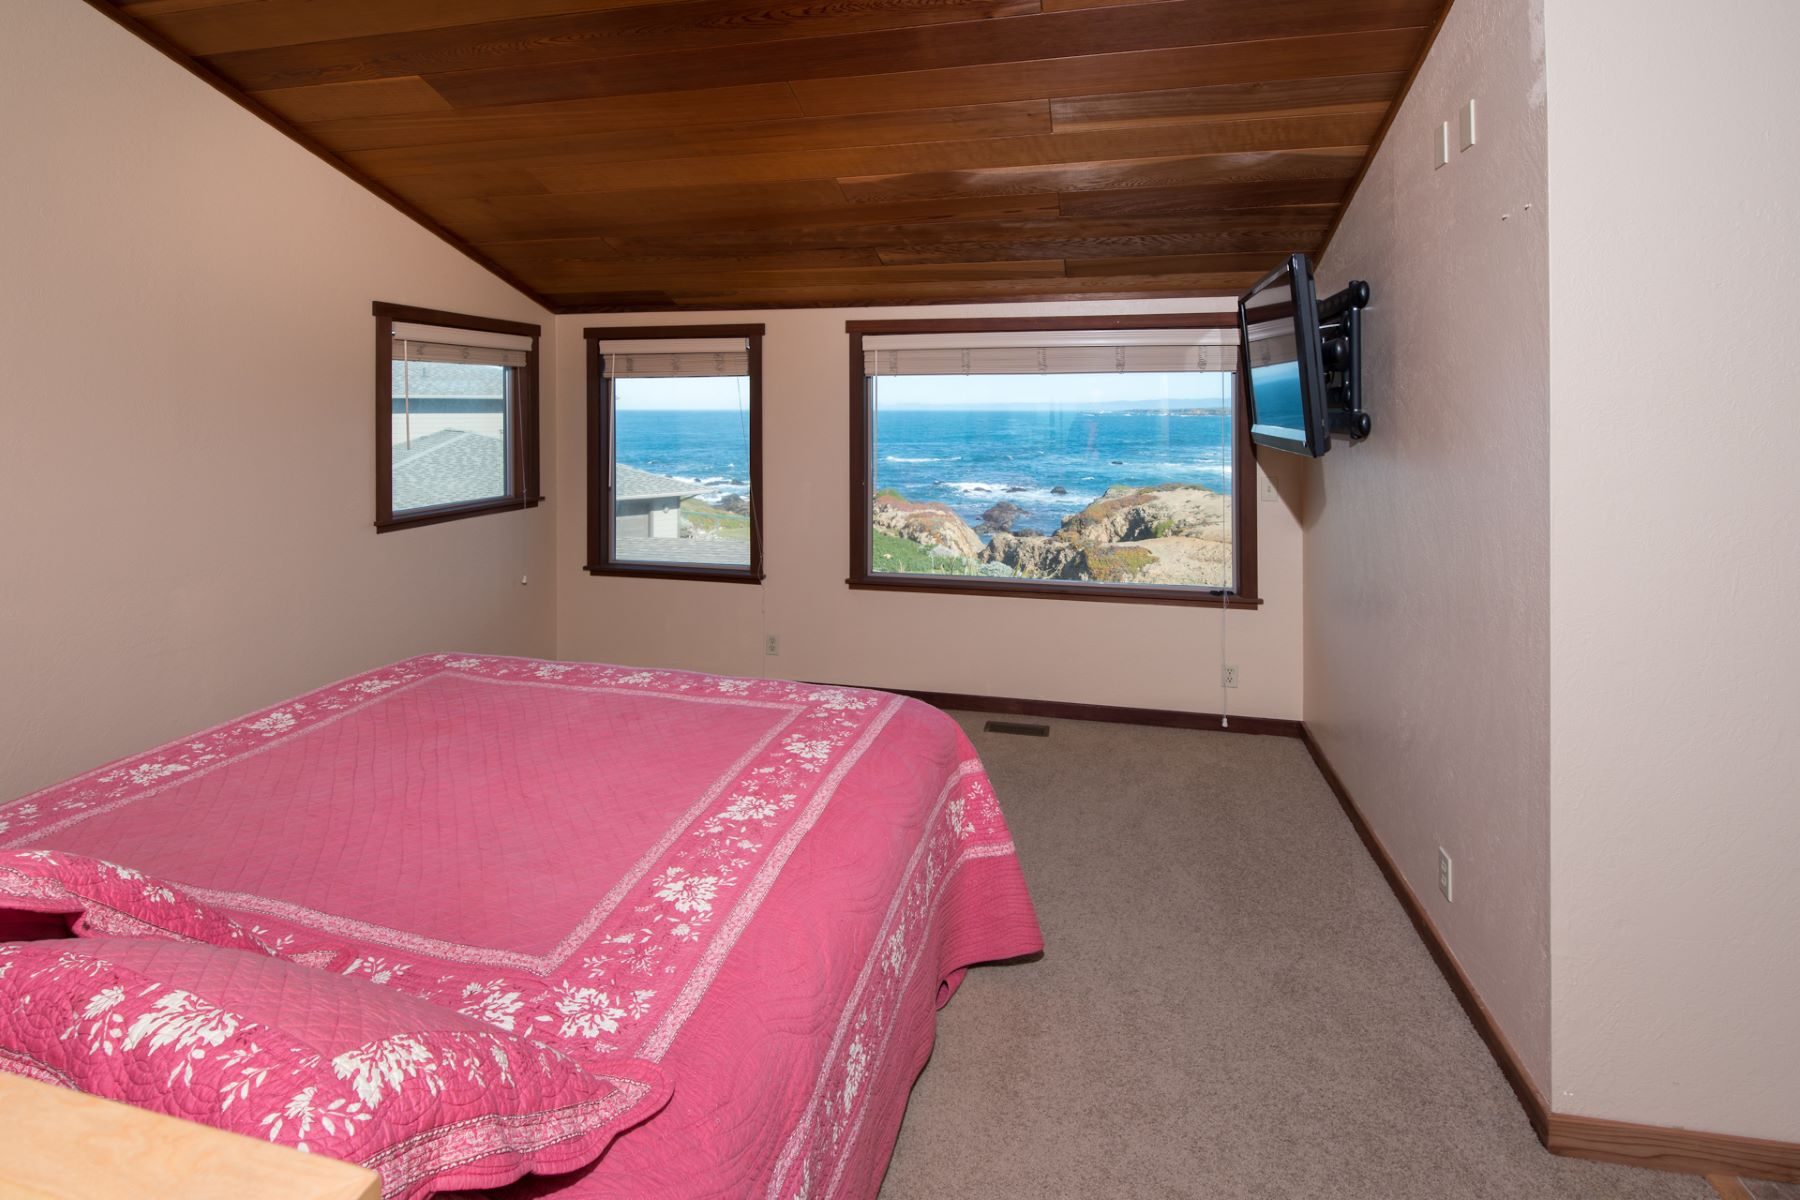 Additional photo for property listing at Whitewater Oceanfront Getaway 33610 Schoefer Lane Fort Bragg, California 95437 United States